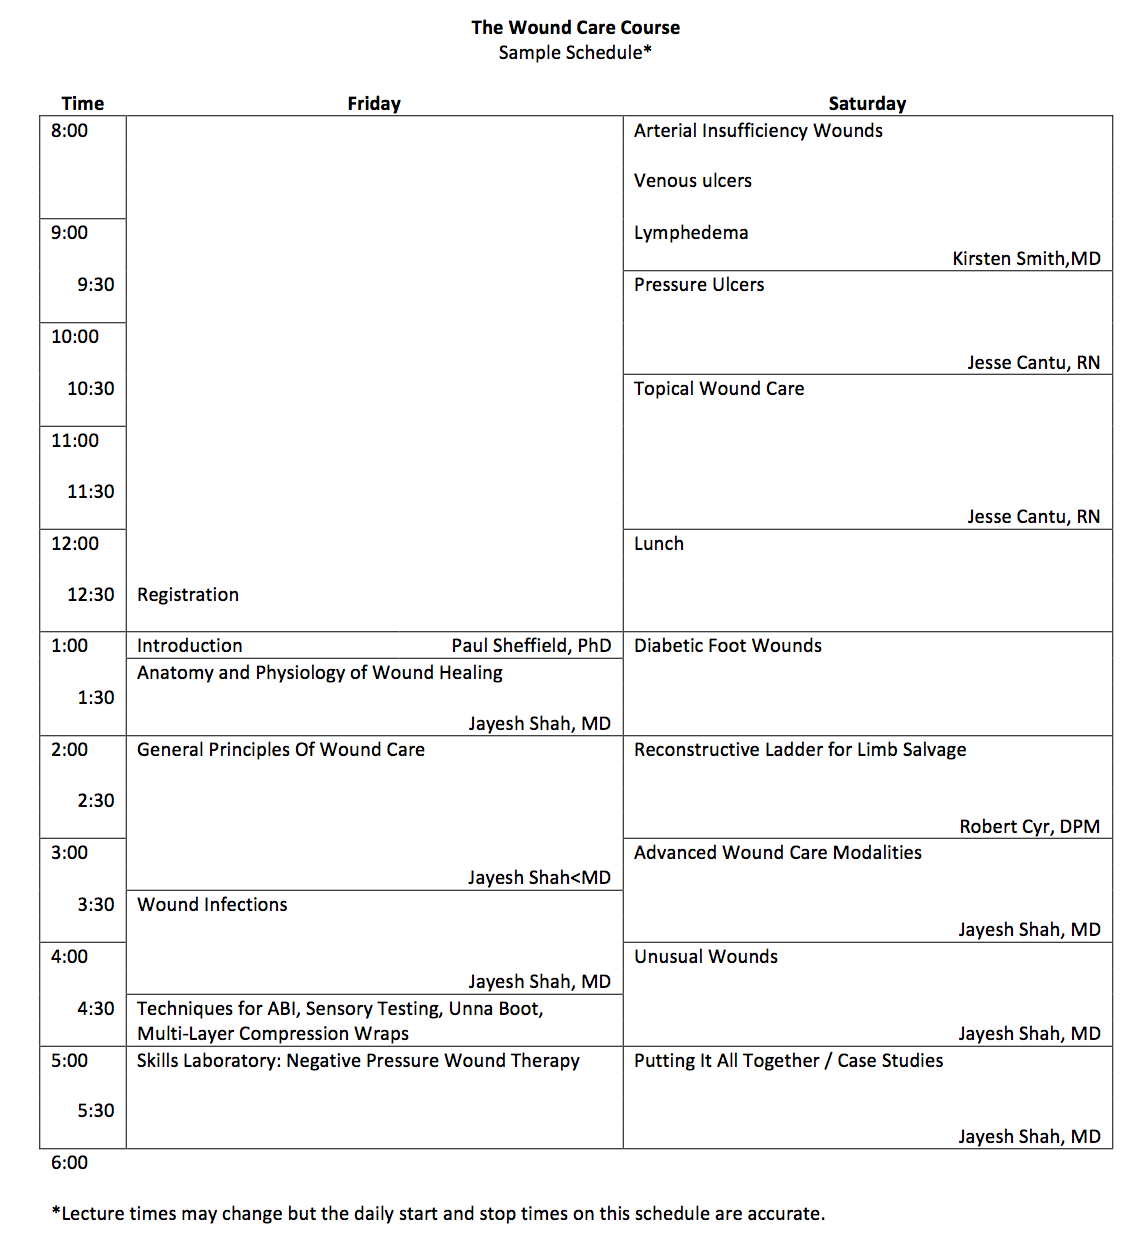 WCC Course Sample Schedule